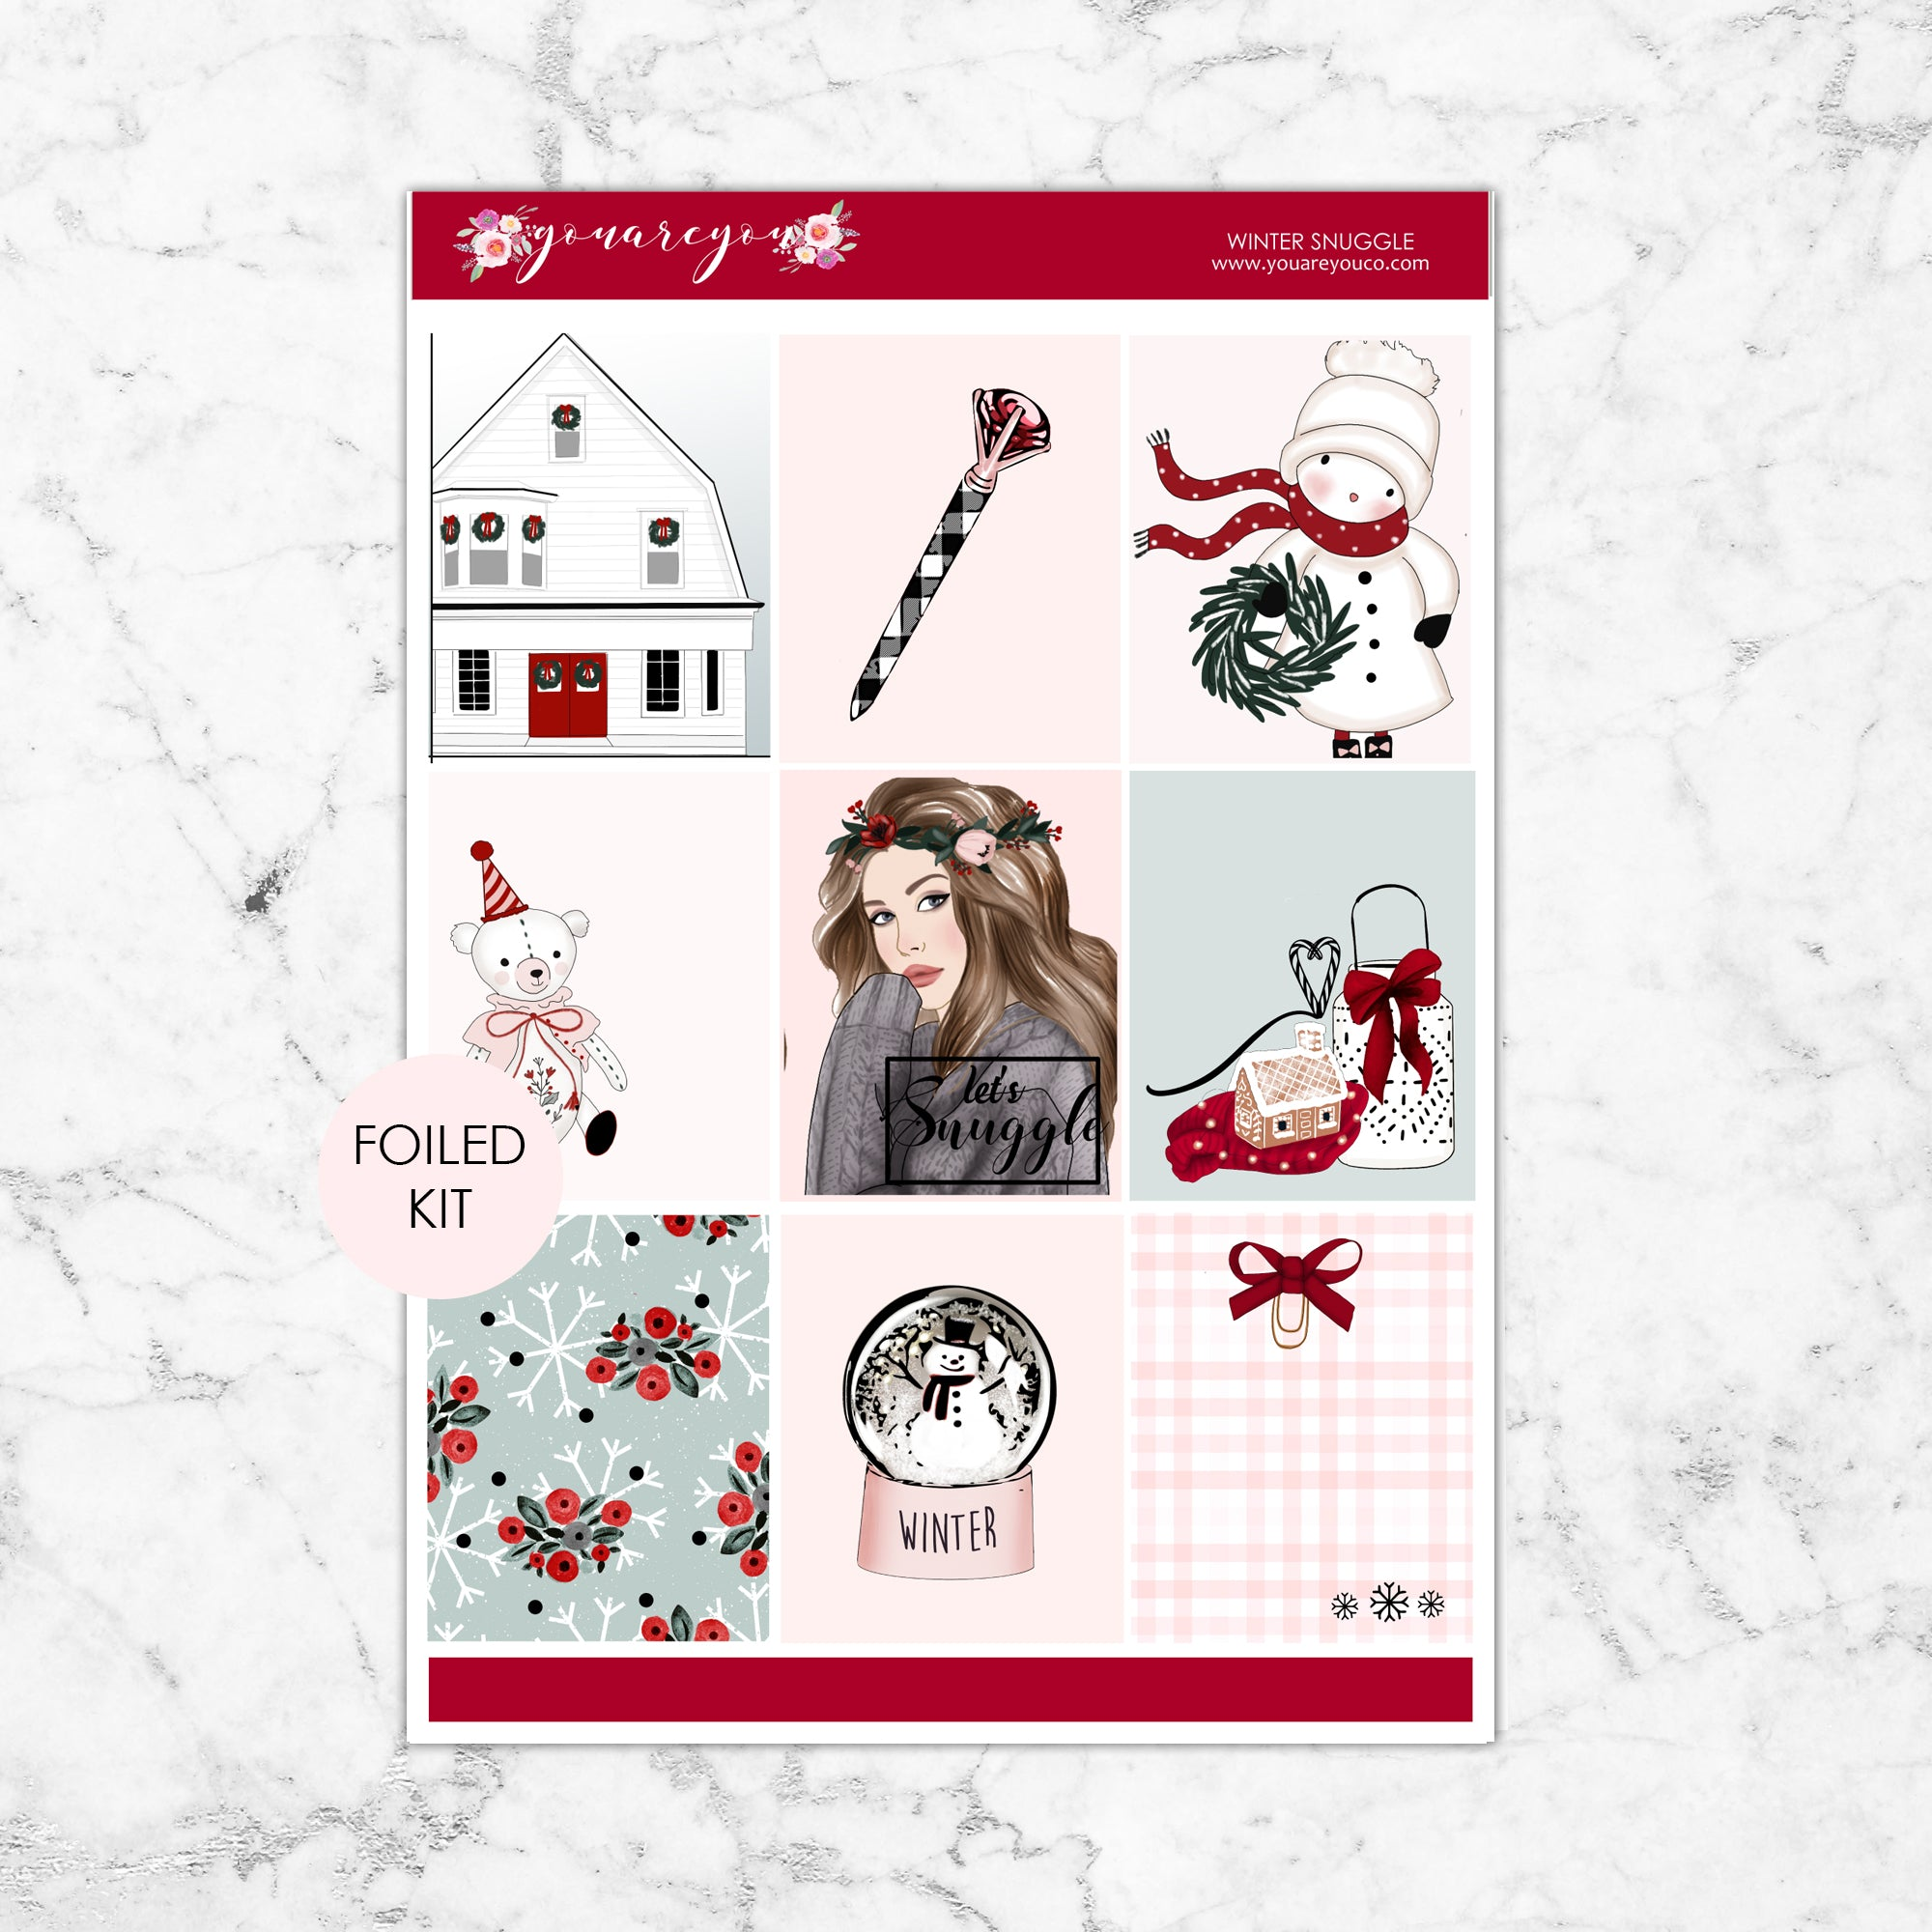 FOILED Planner Stickers Full Kit Vertical - Winter Snuggle